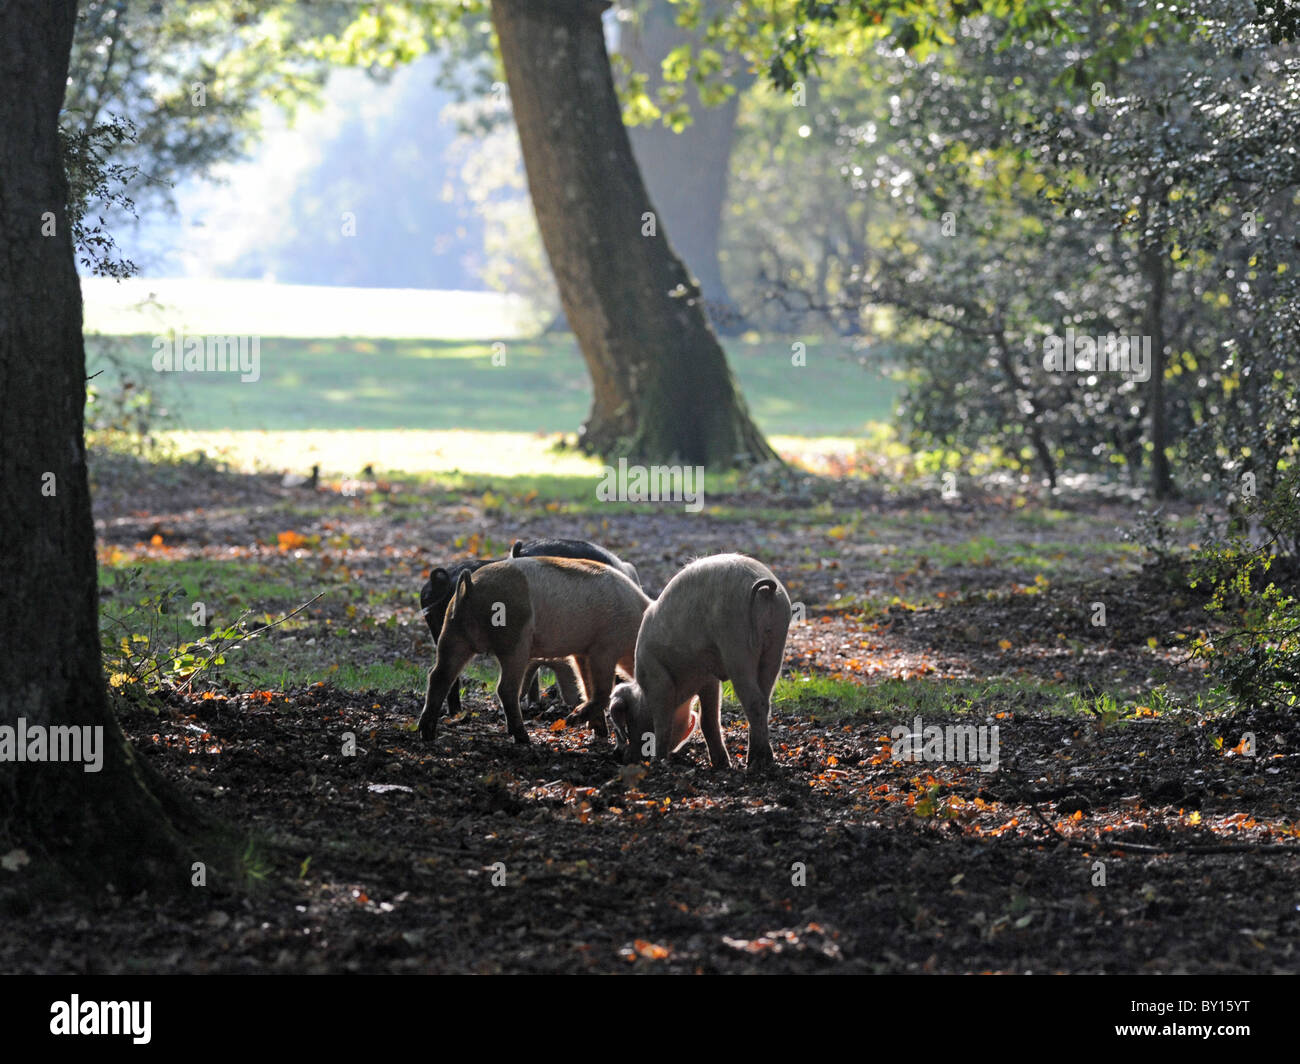 Pigs in the New Forest, Hampshire hunting for acorns by digging with their snouts. - Stock Image